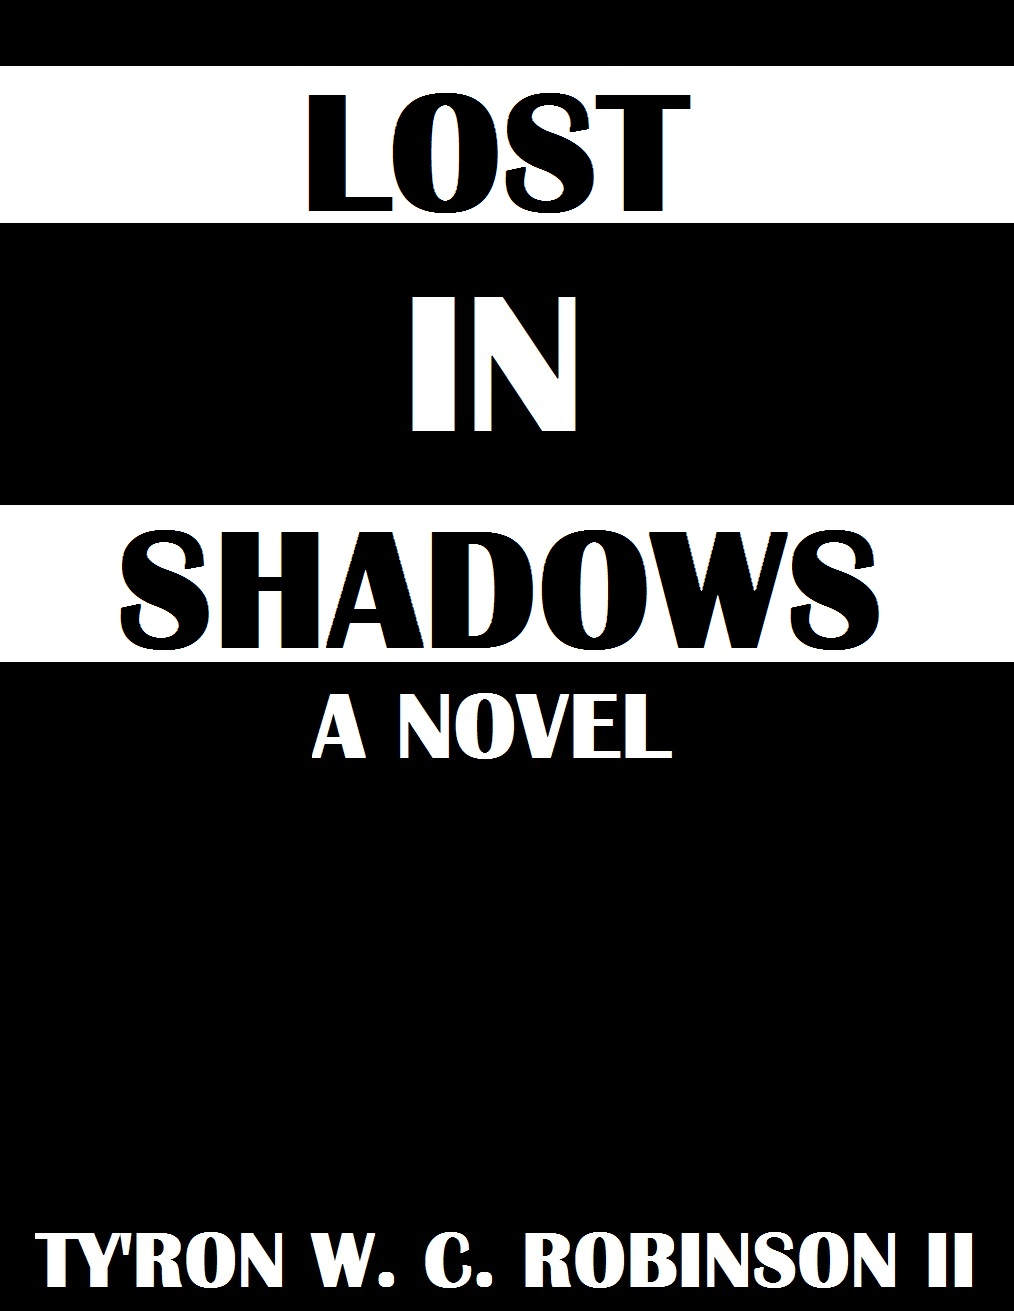 Lost in Shadows - Cover Revised.jpg